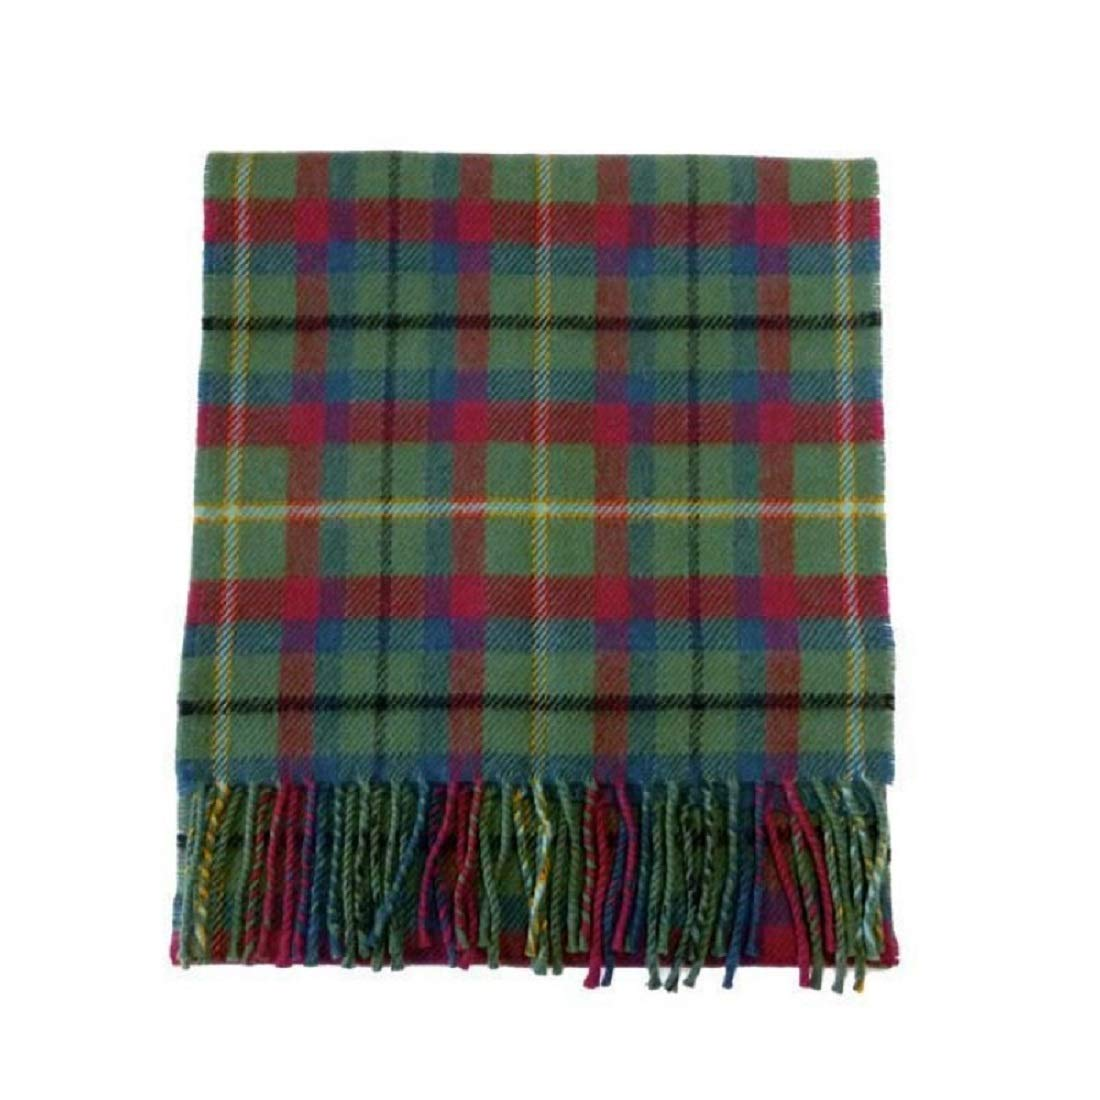 USA Kilts Irish County Mayo Wool Tartan Plaid Scarf Made in Scotland